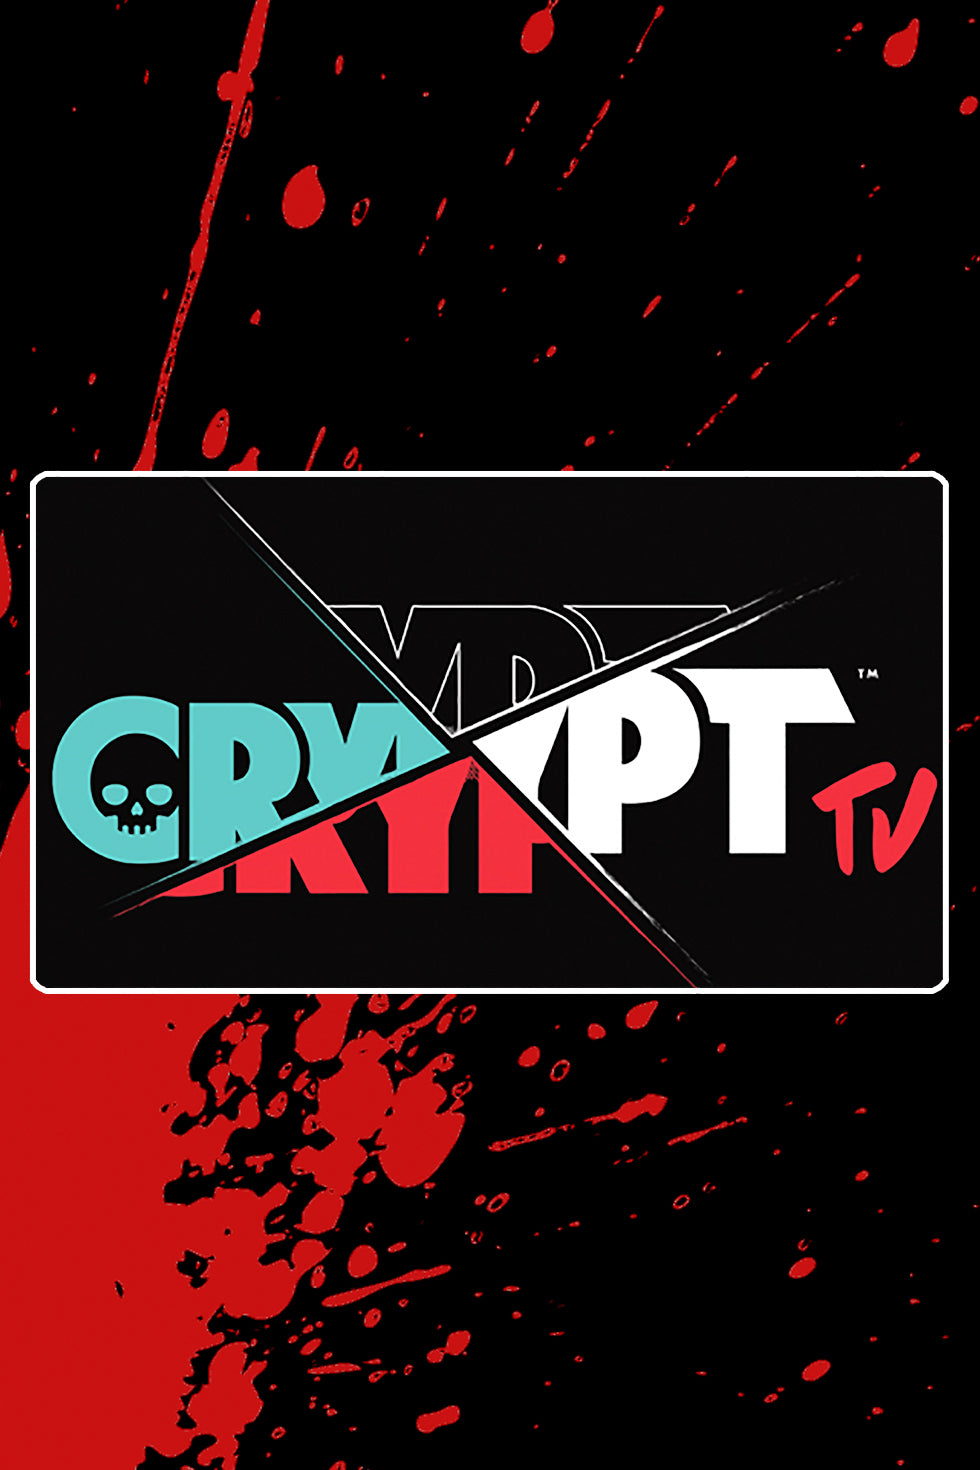 Crypt TV - Gift Card